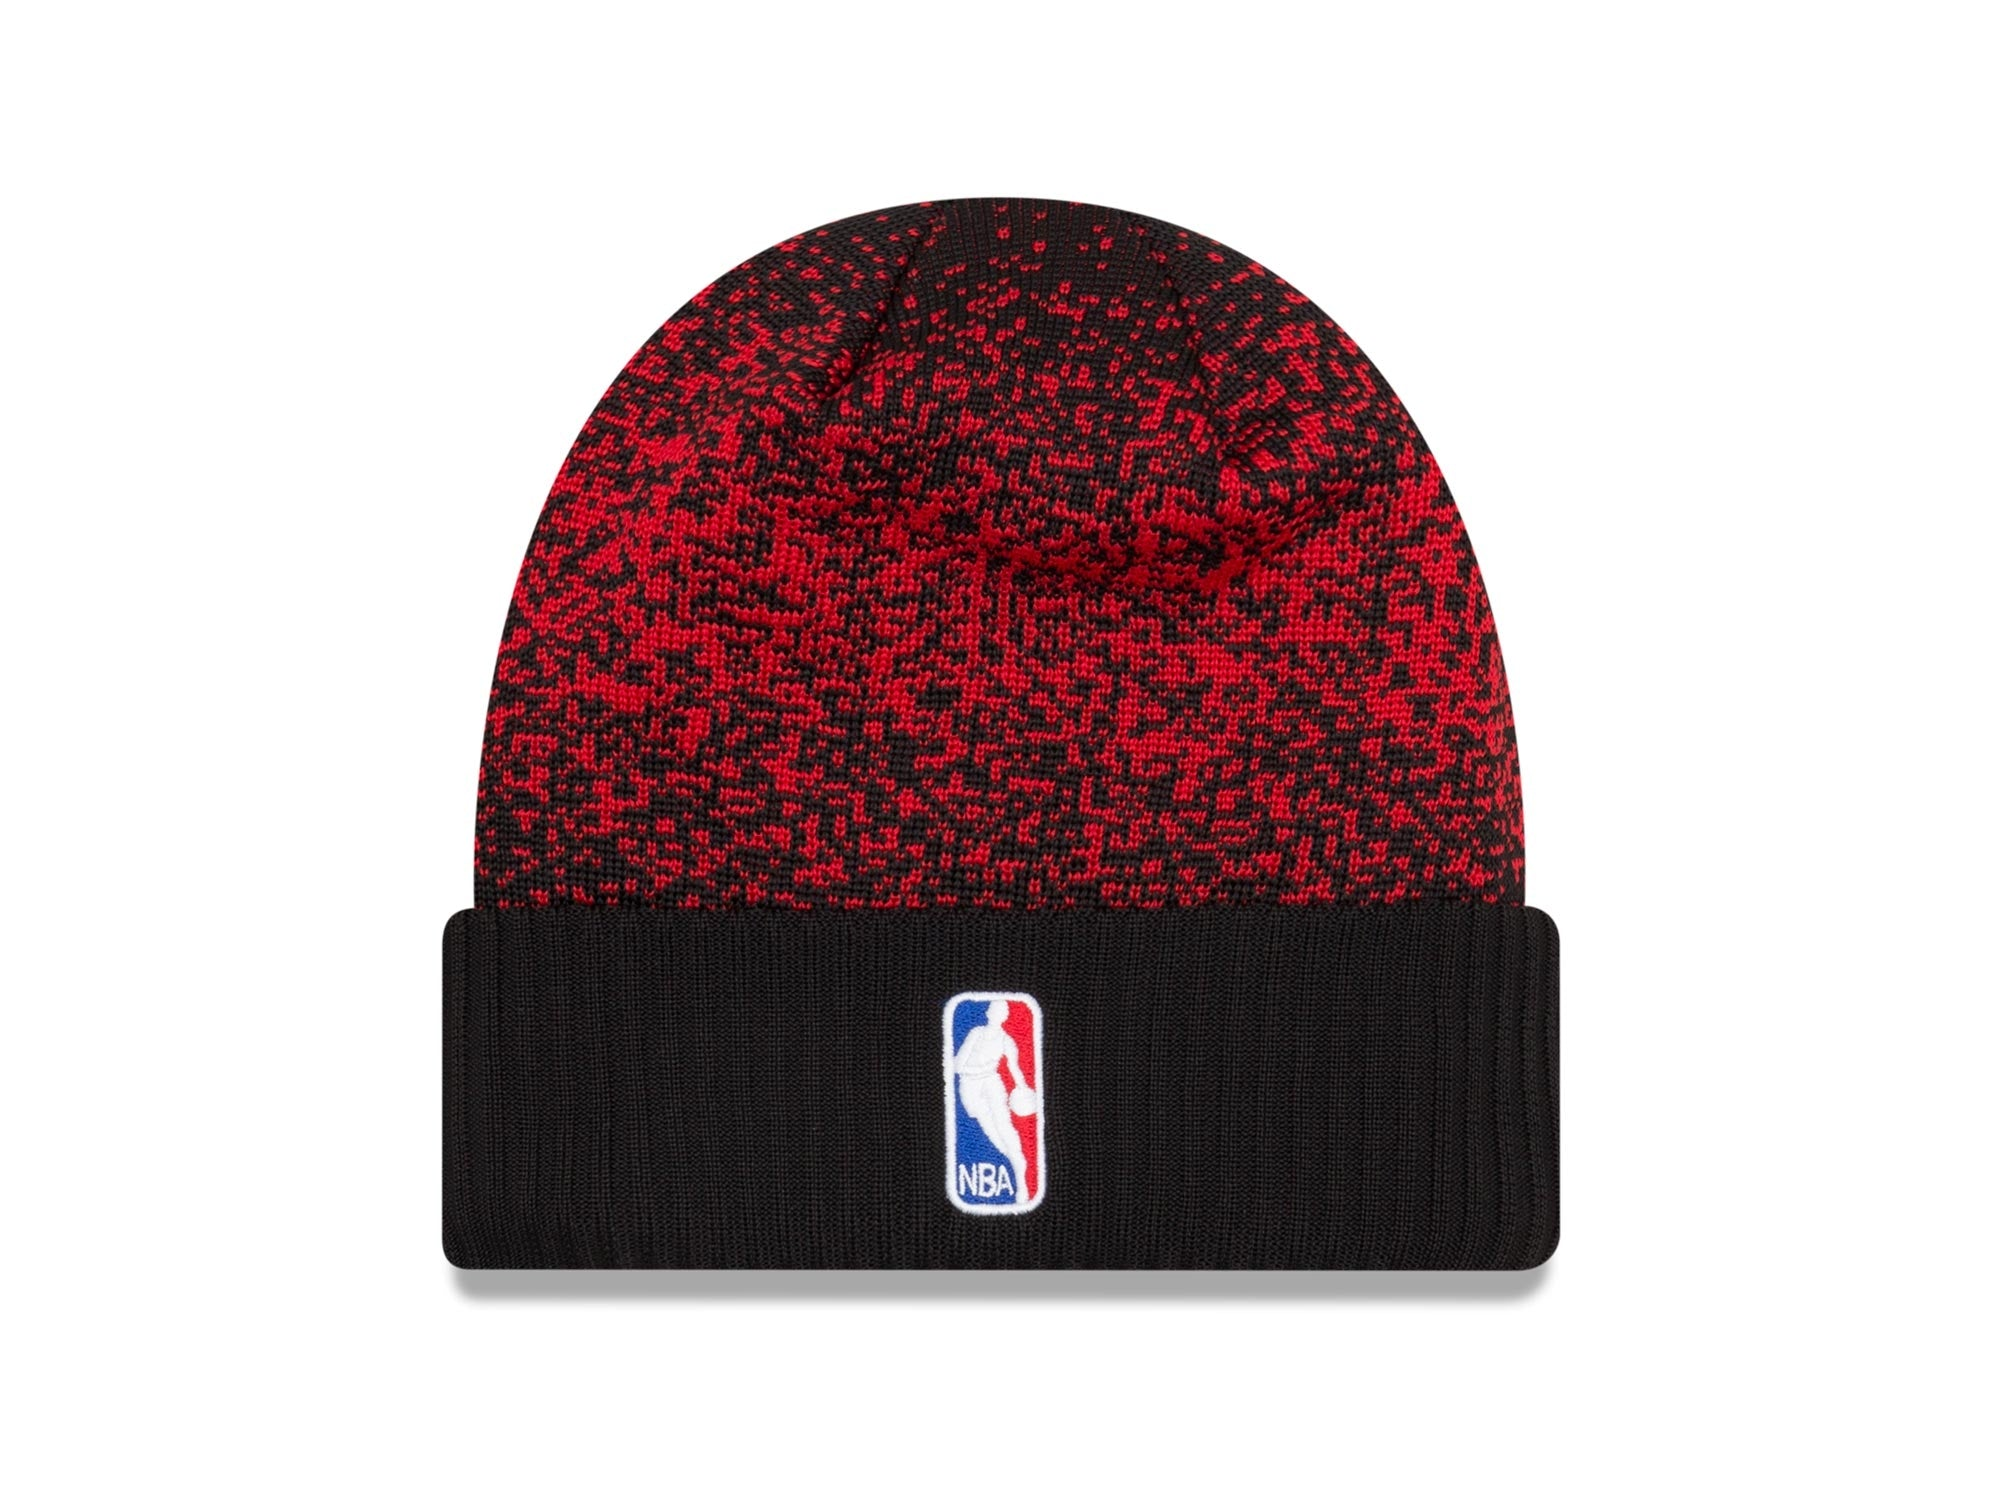 Beanie New Era Jr Nba17 Onc Cuff Chibul Unisex